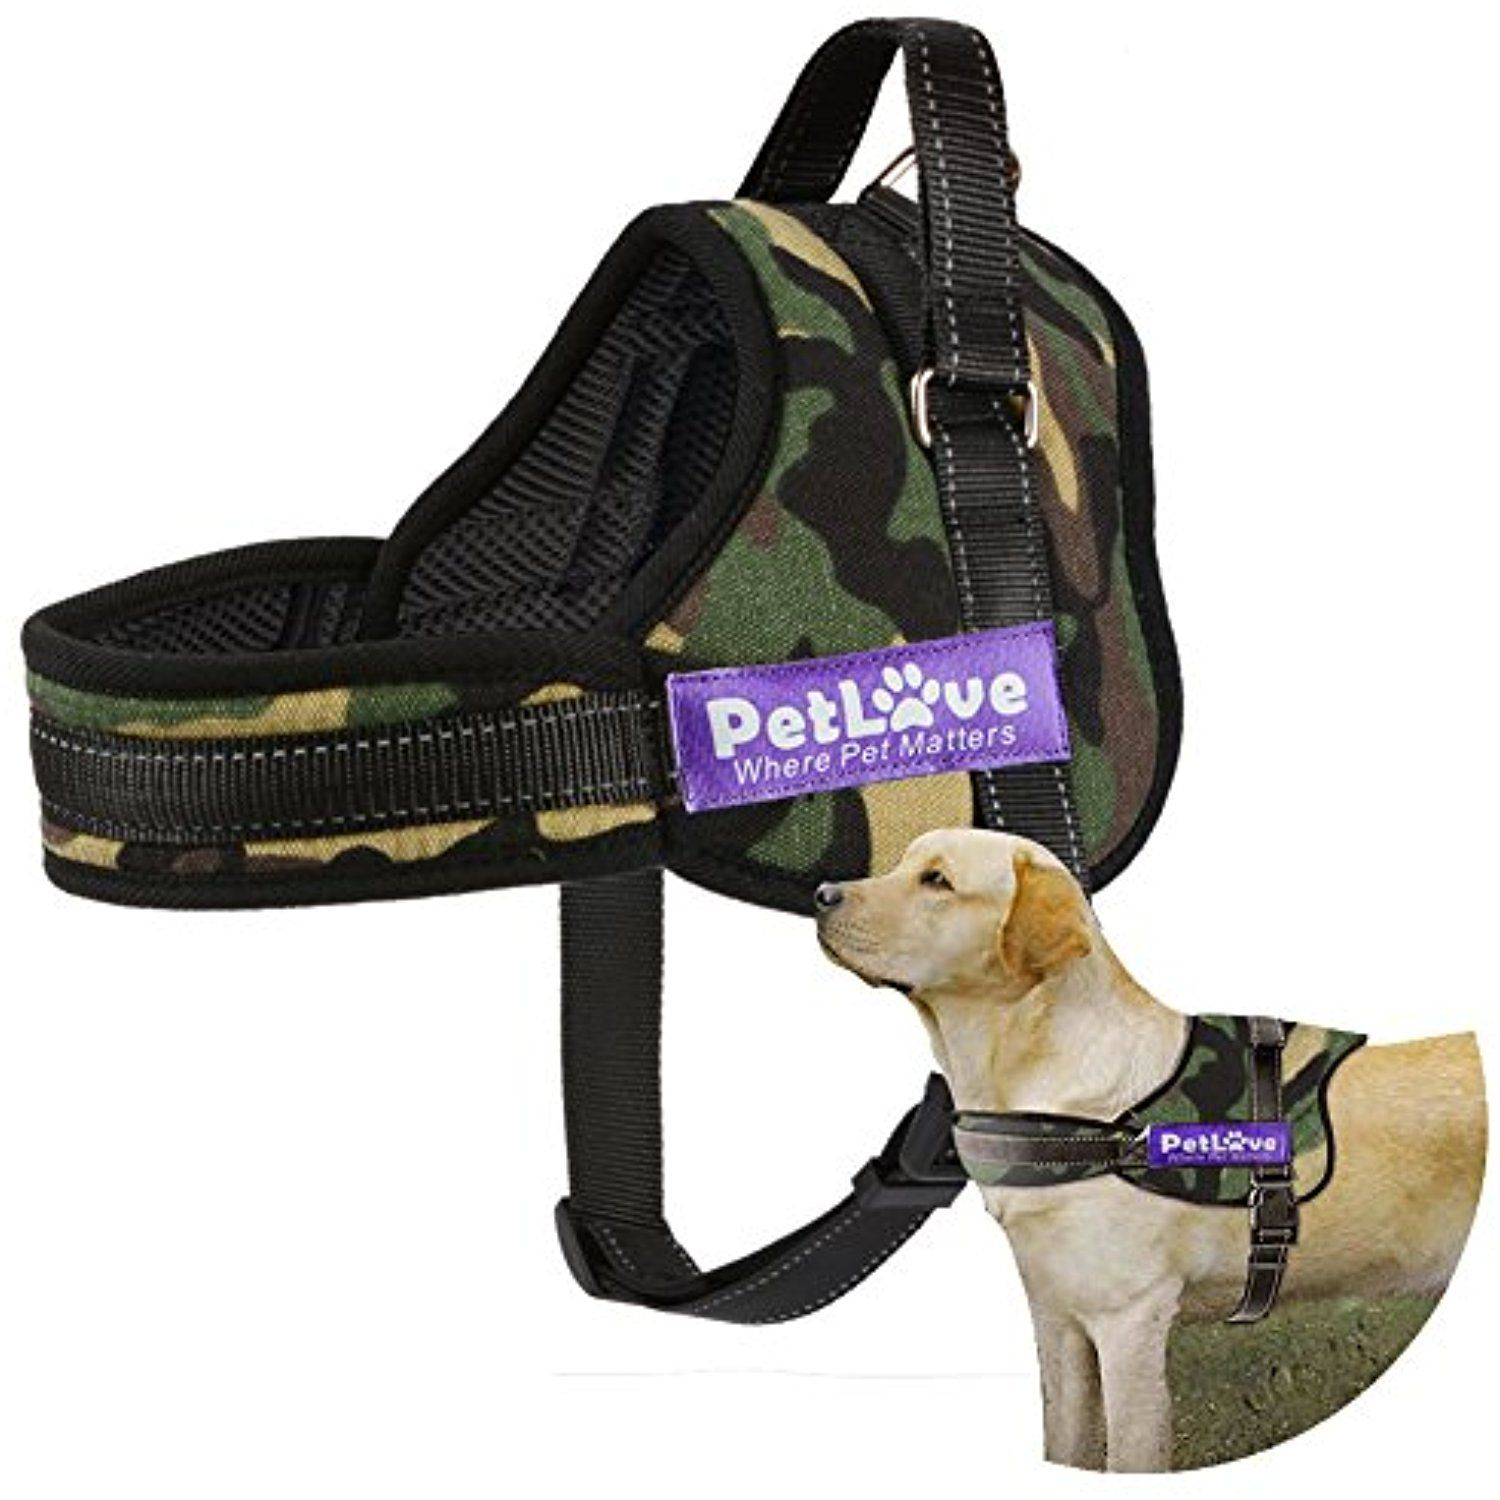 Dog Harness Petlove Soft Leash Padded No Pull Dog Harness With